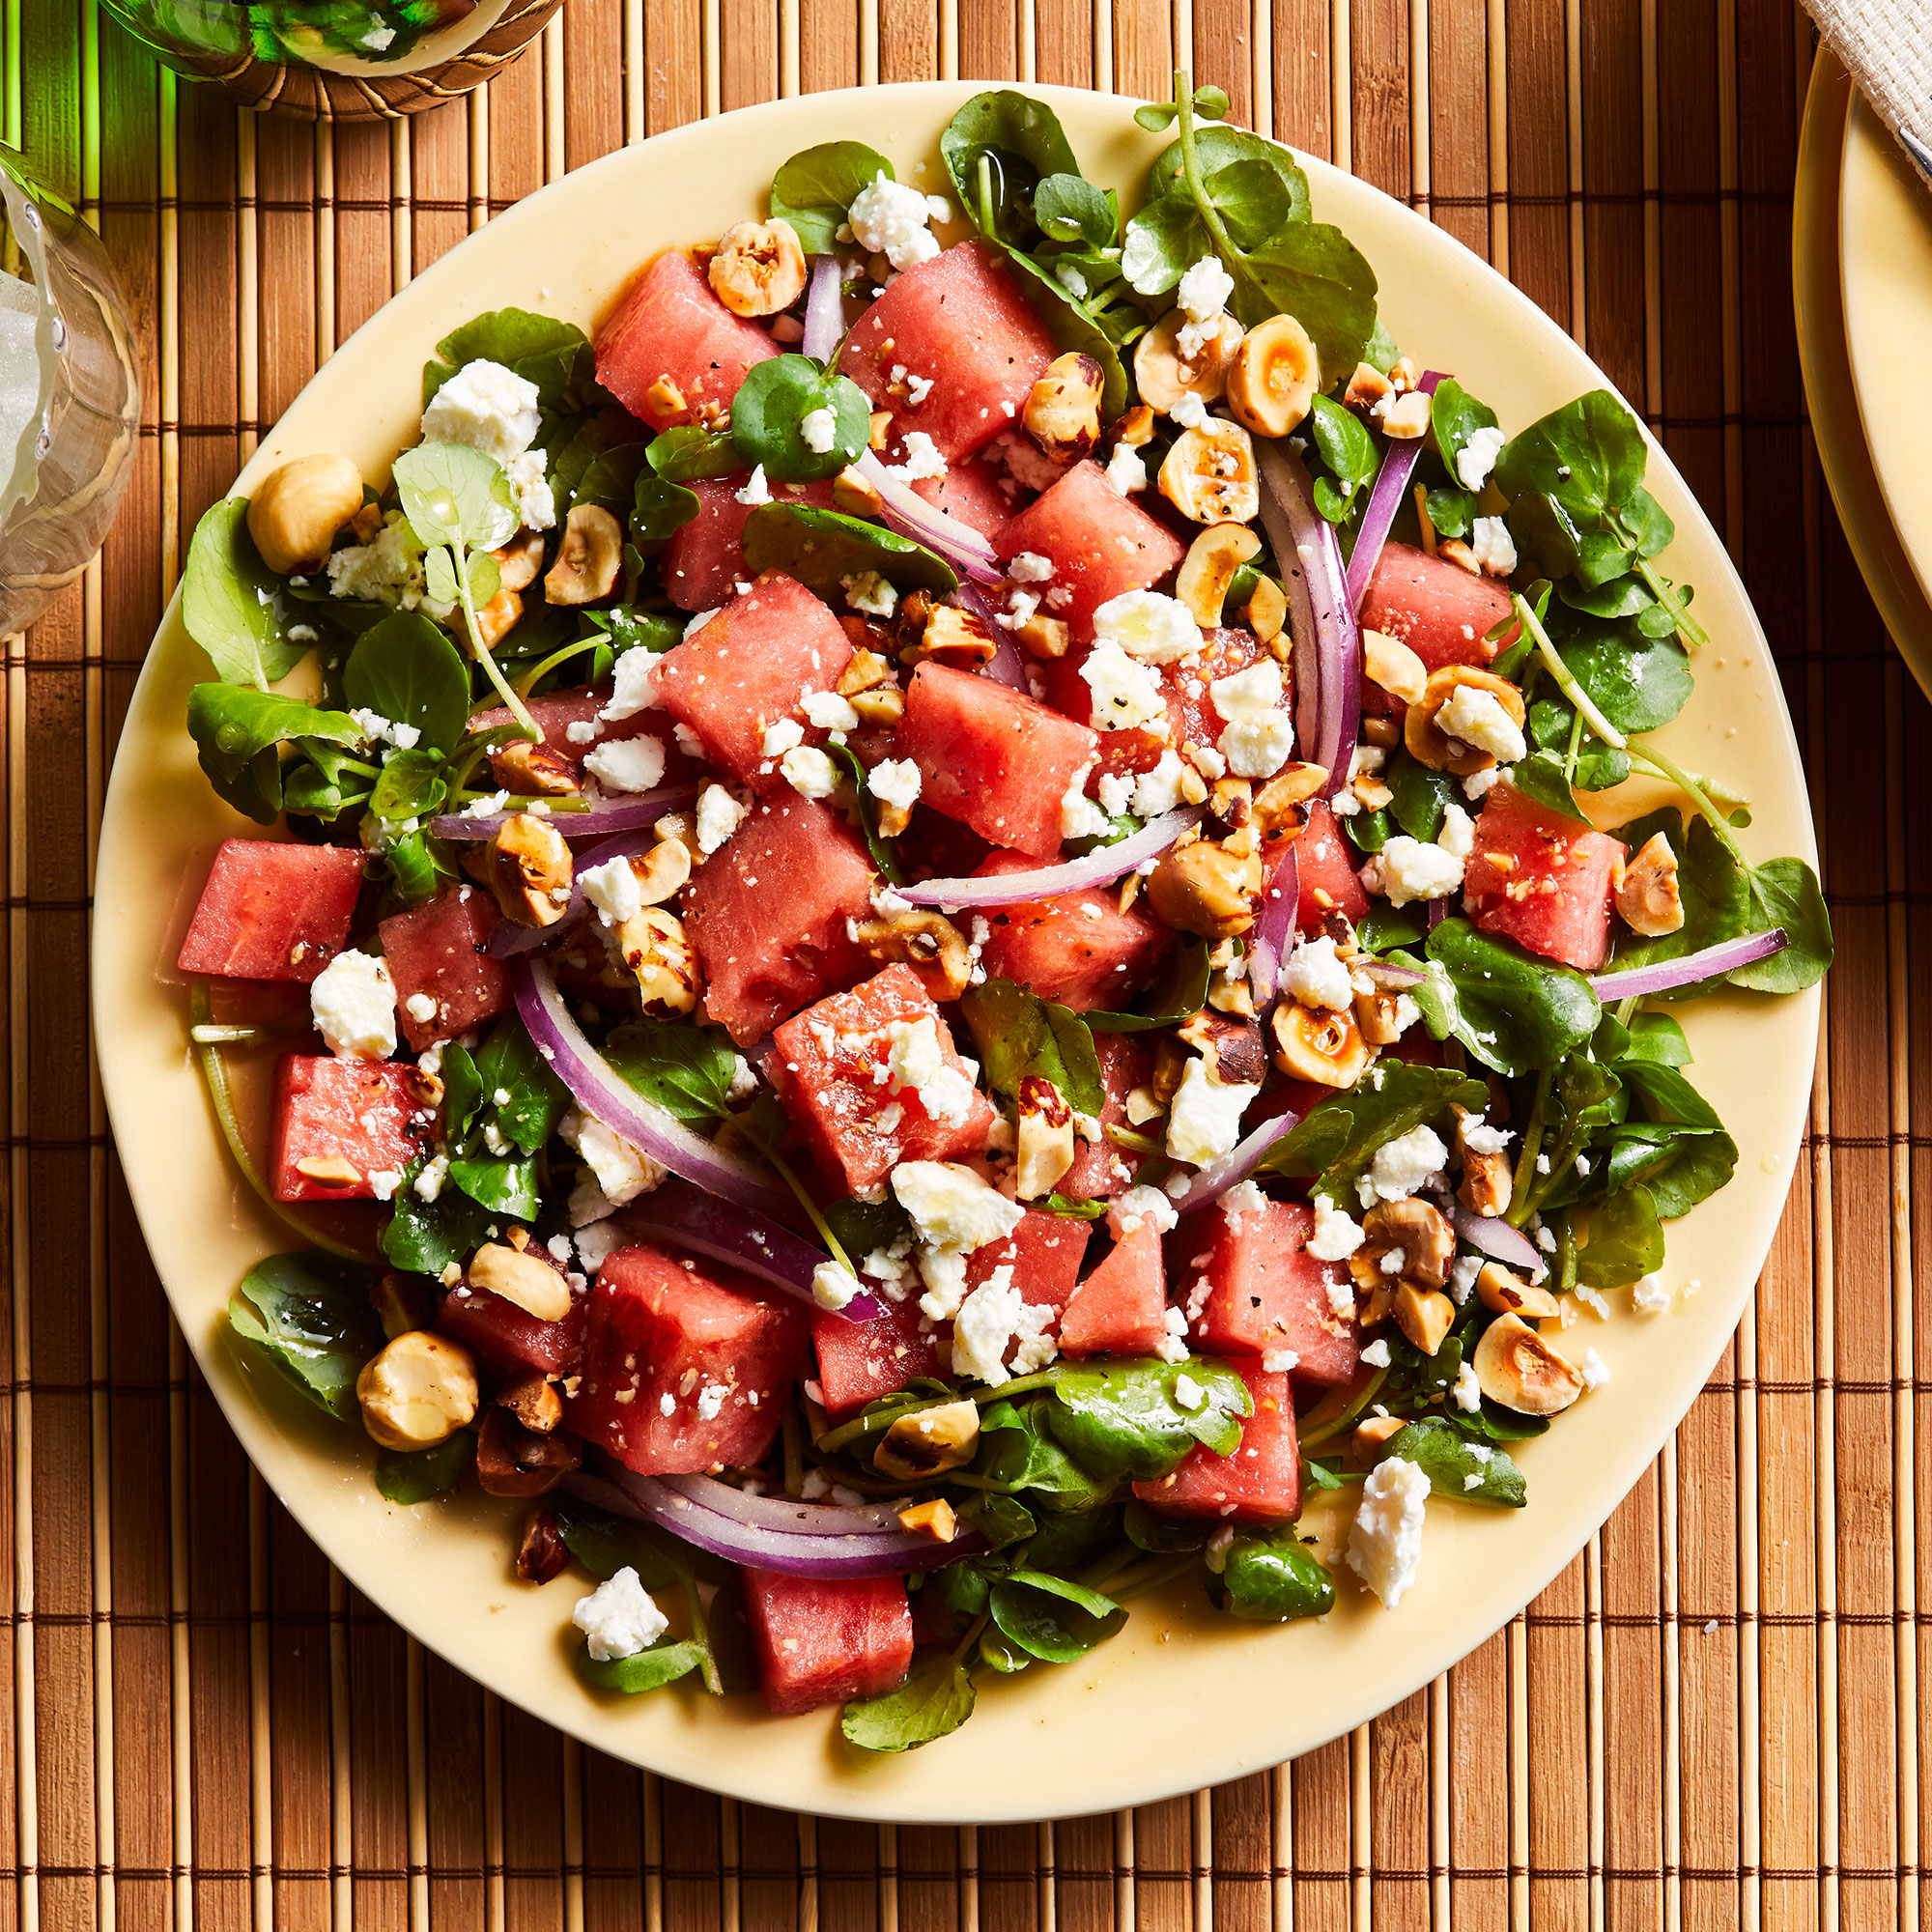 Watermelon & Goat Cheese Salad with Citrus Vinaigrette